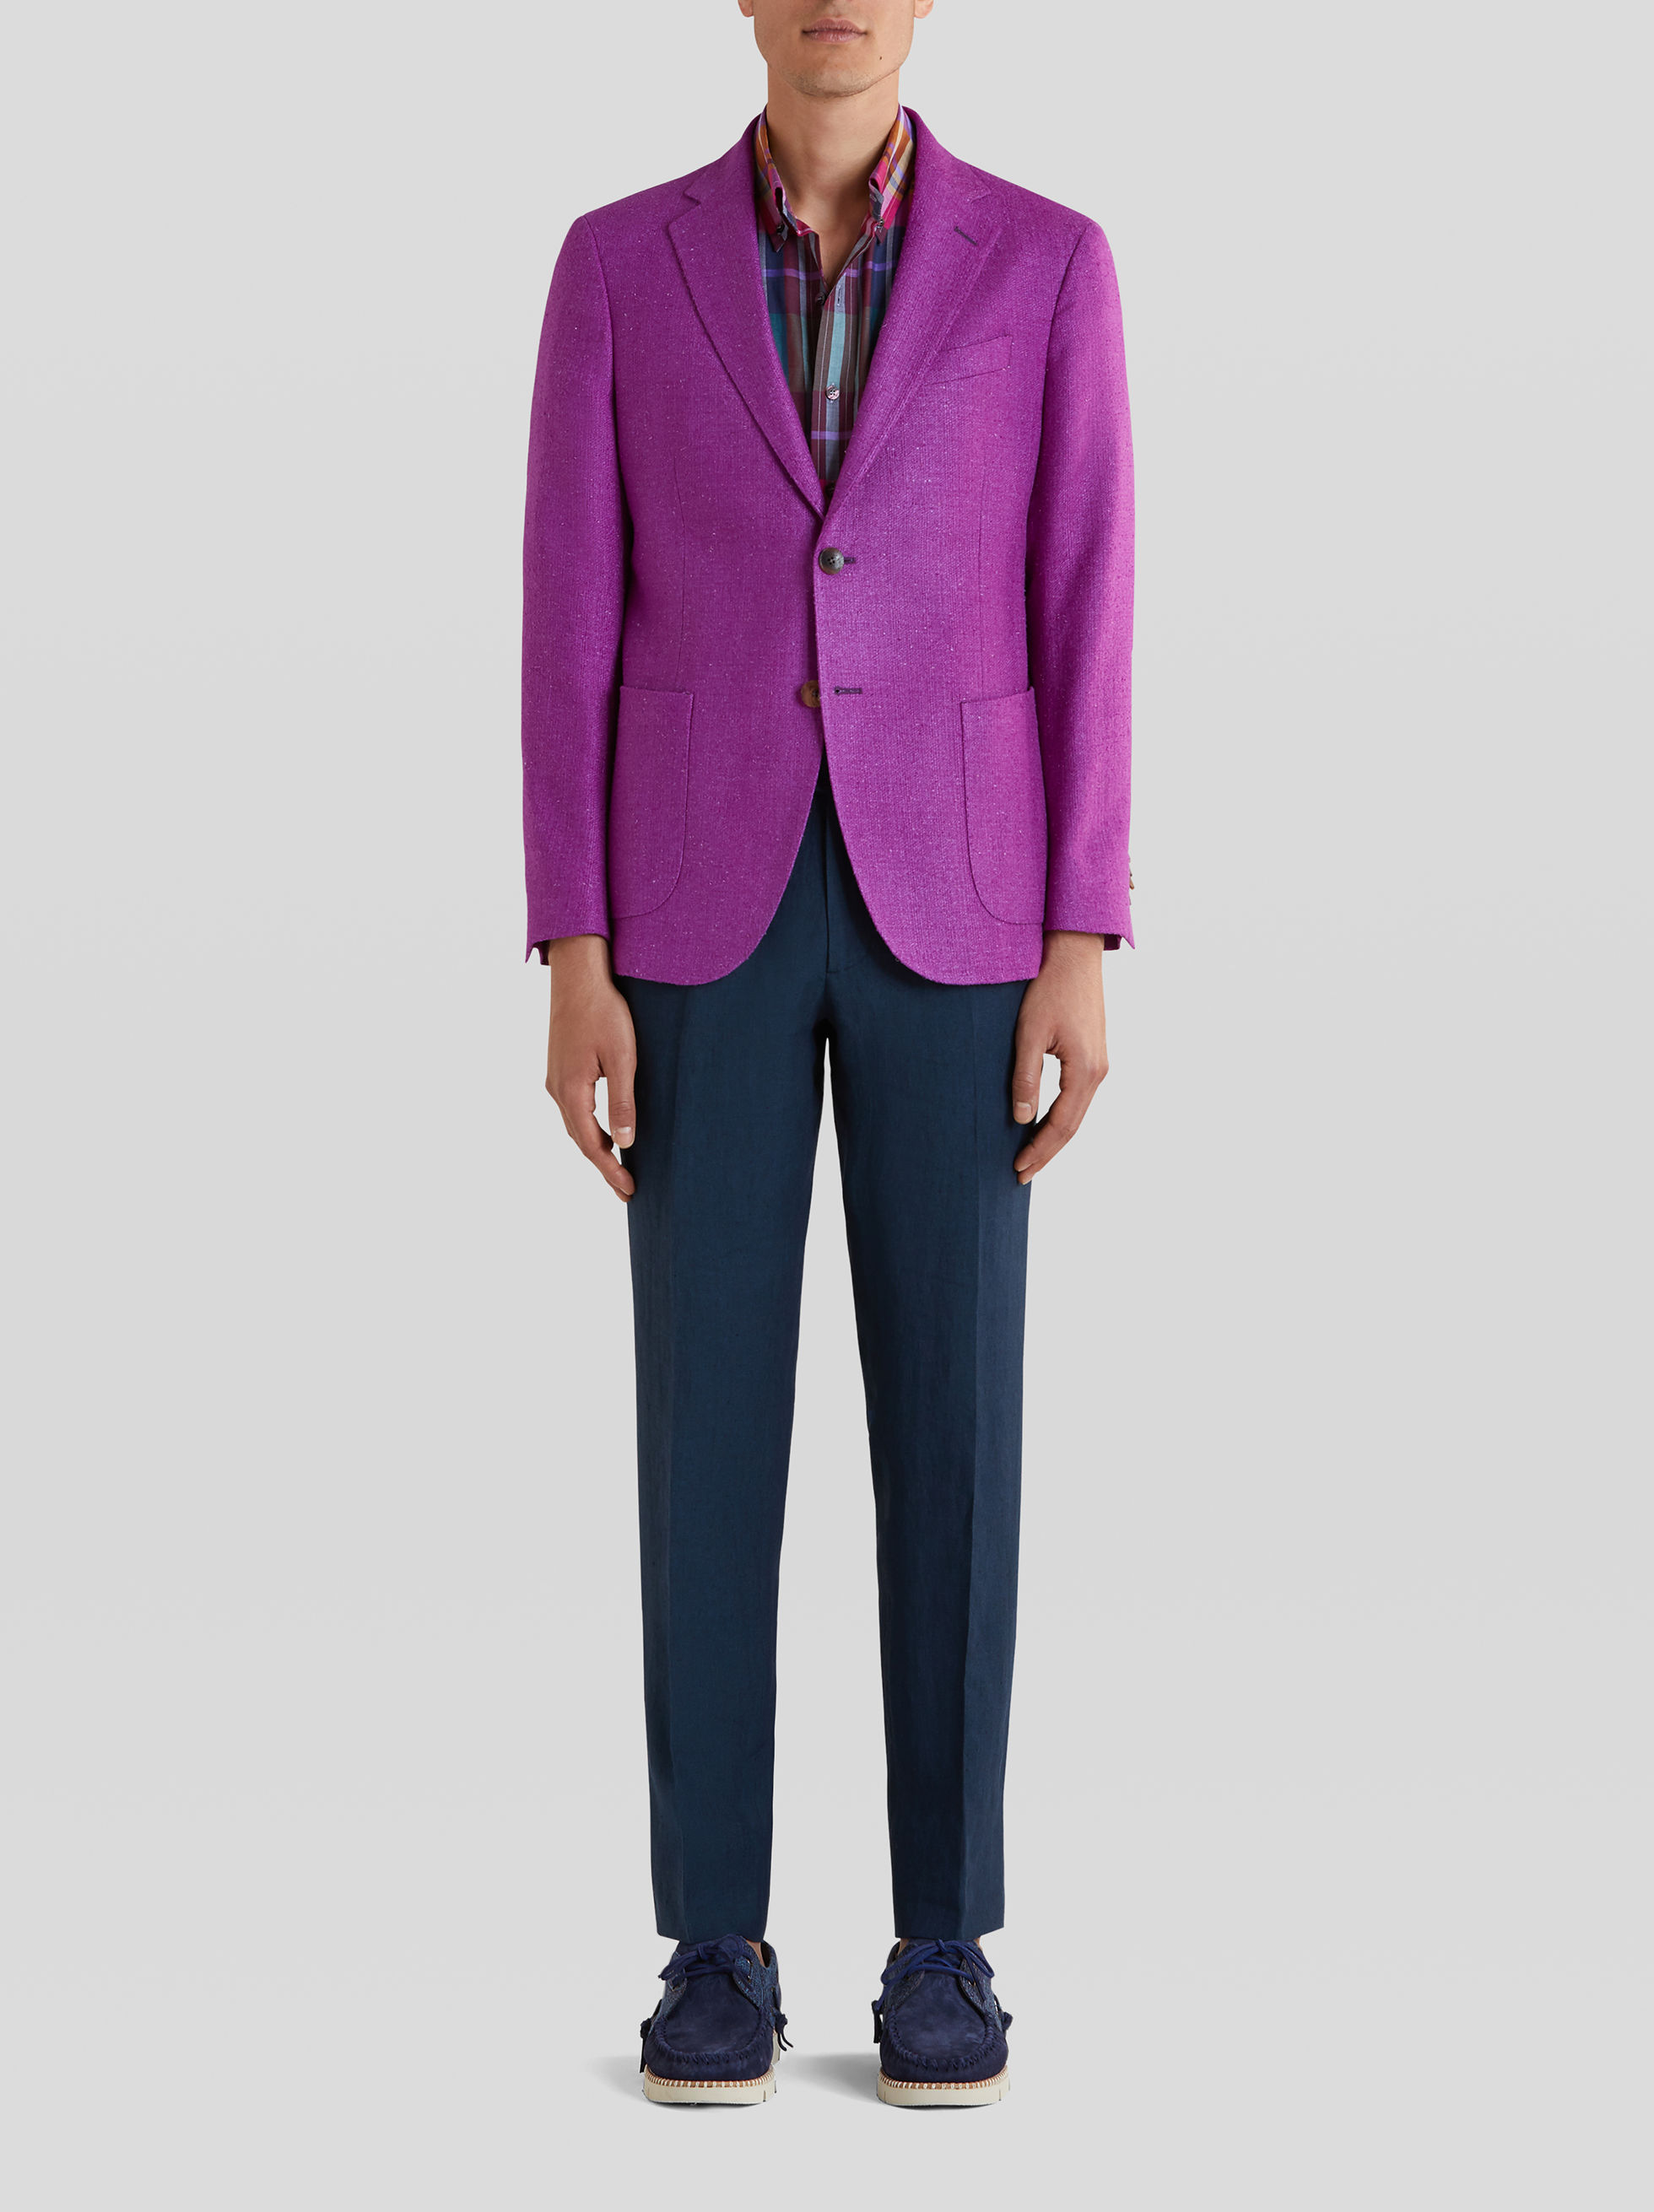 TAILORED JACKET IN SILK